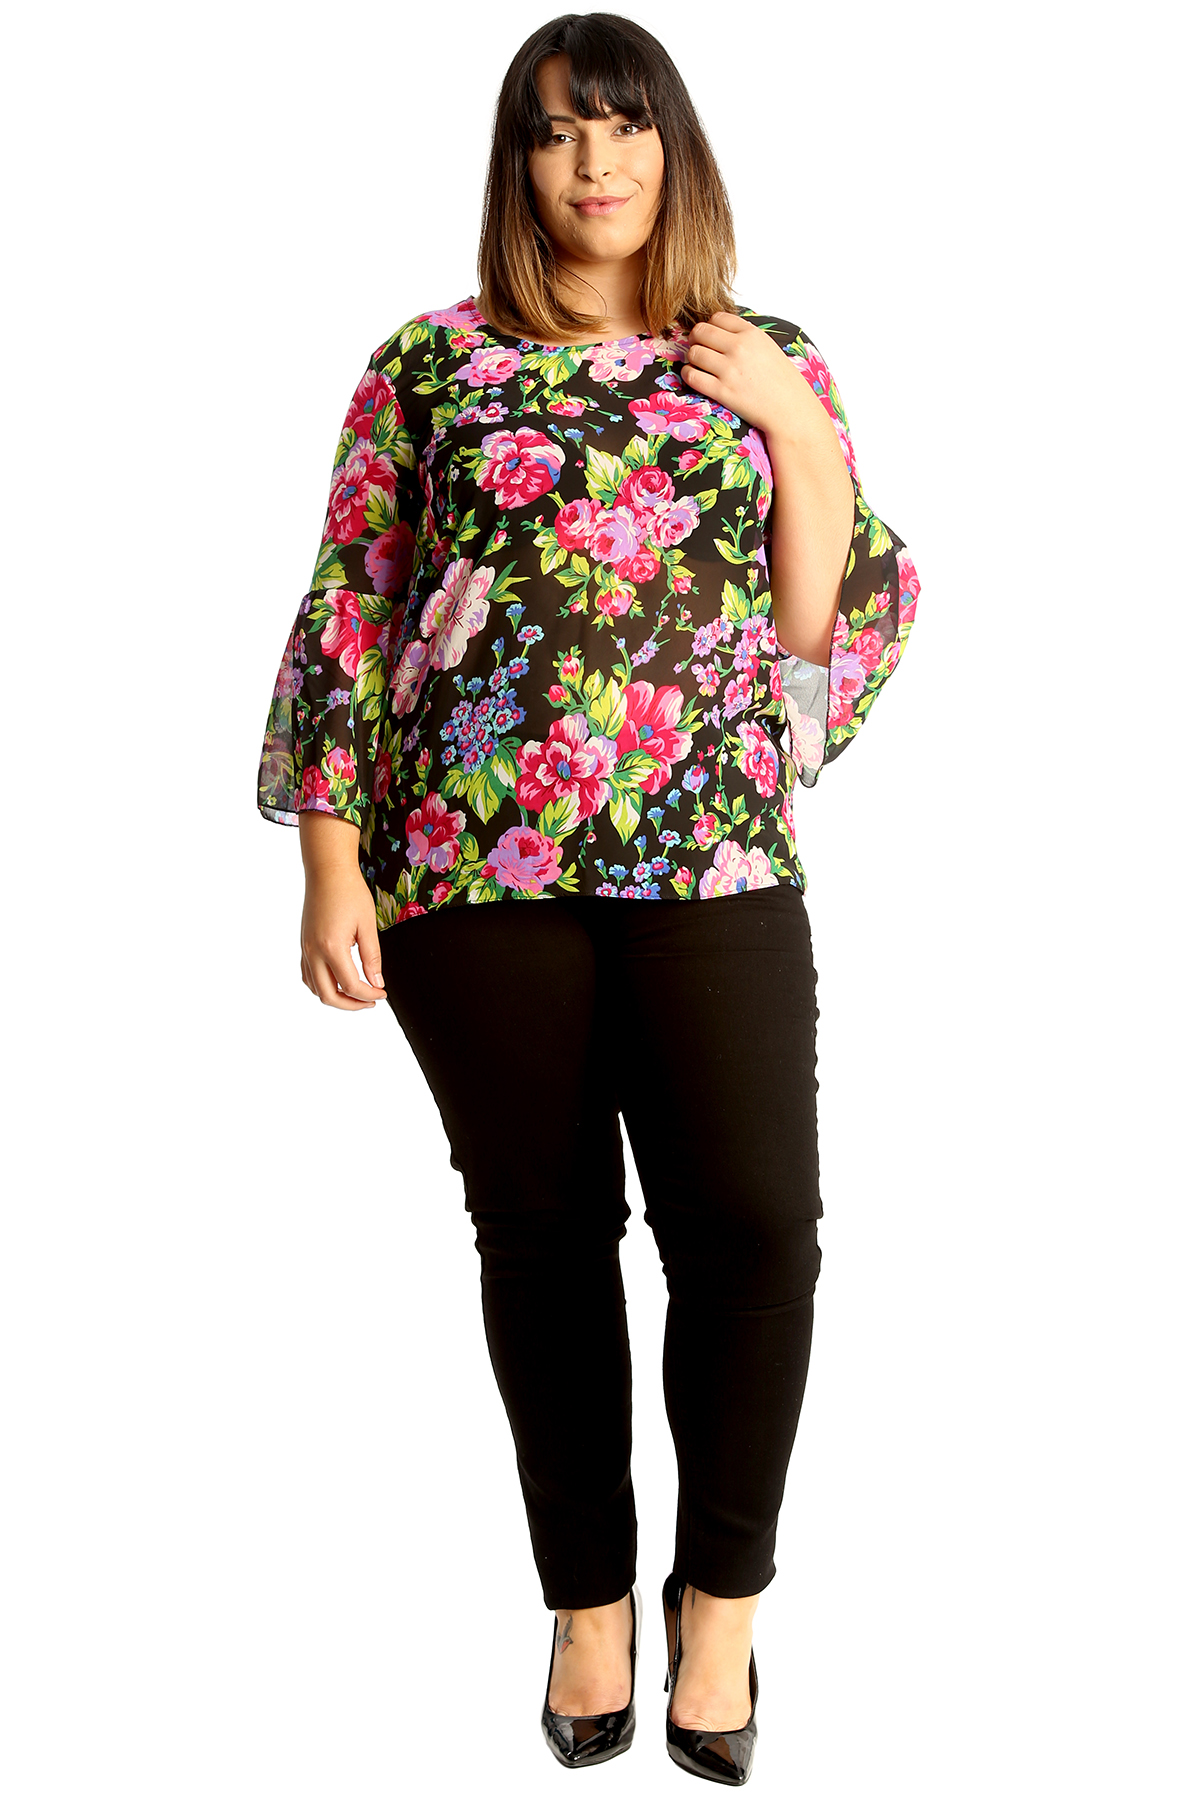 New Womens Plus Size Chiffon Top Ladies Floral Print ...